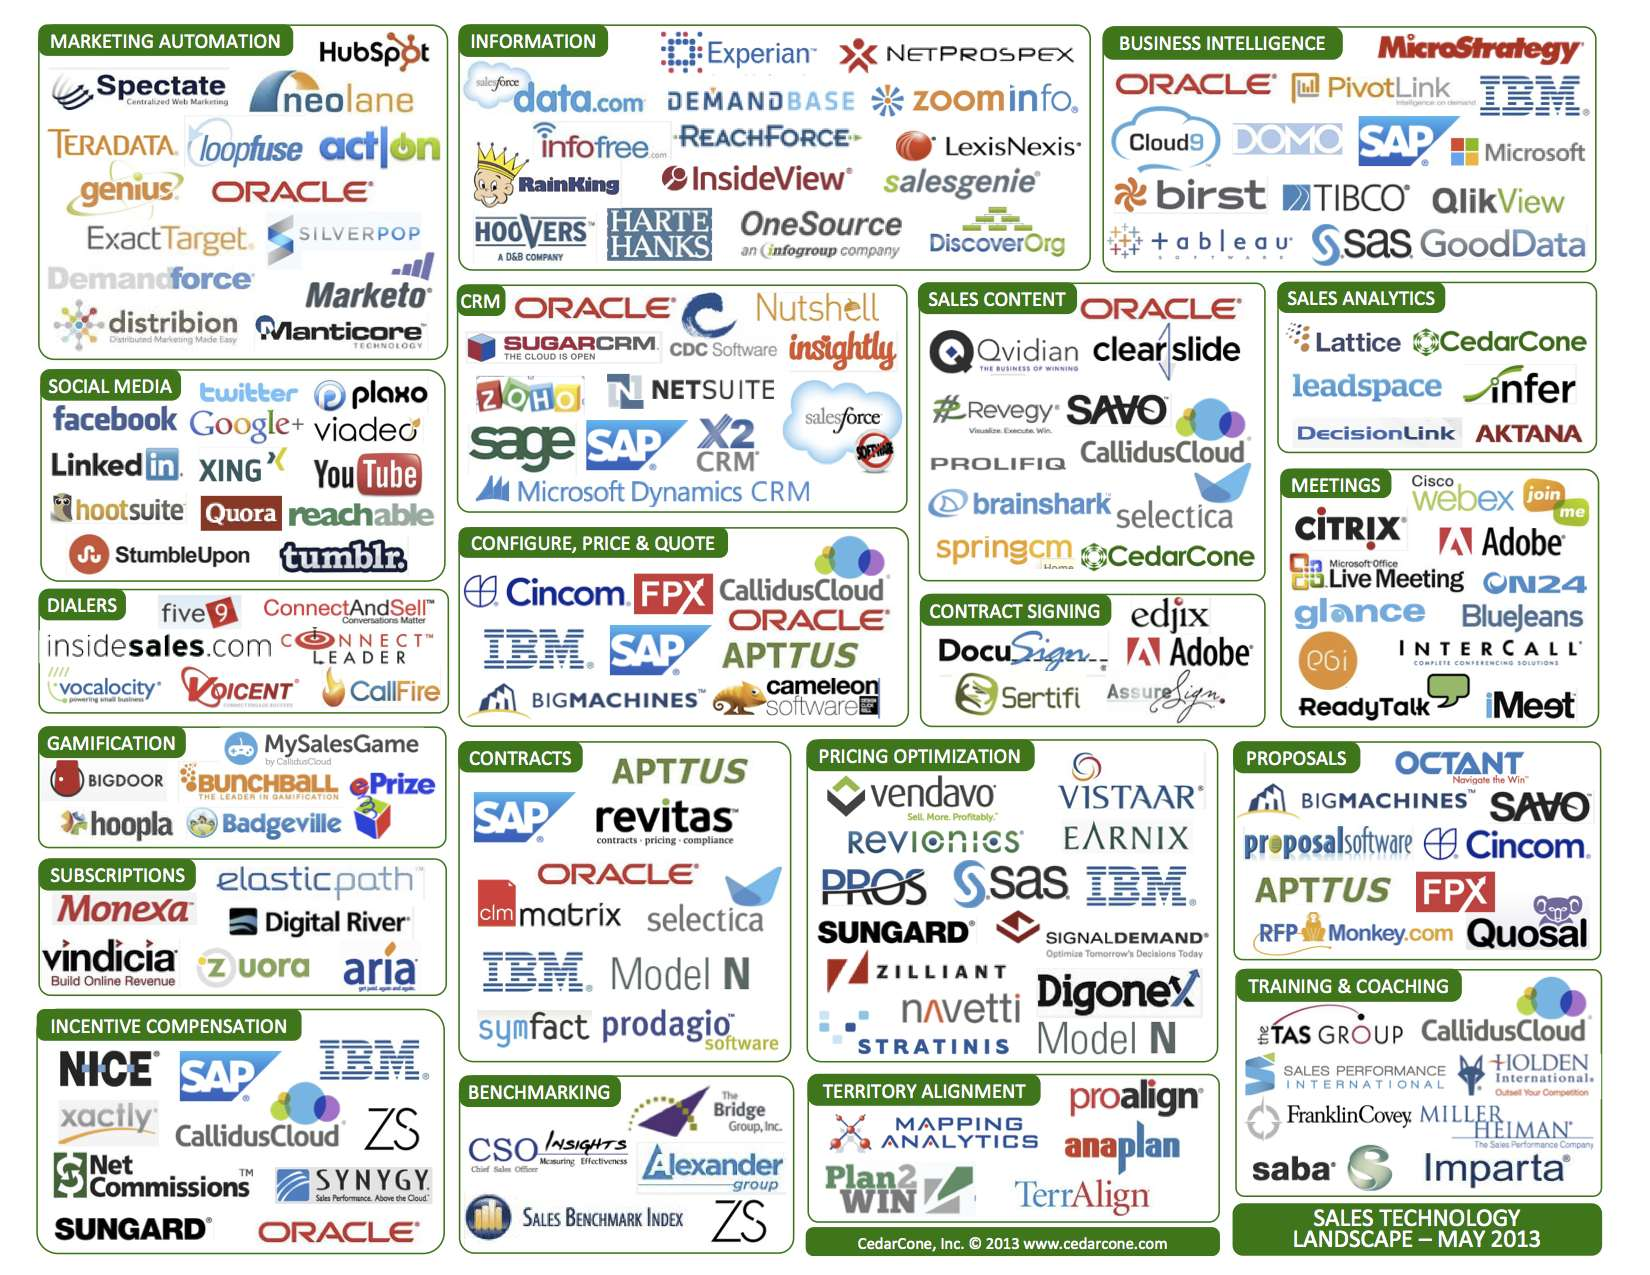 Sales Technology Landscape - May 2013